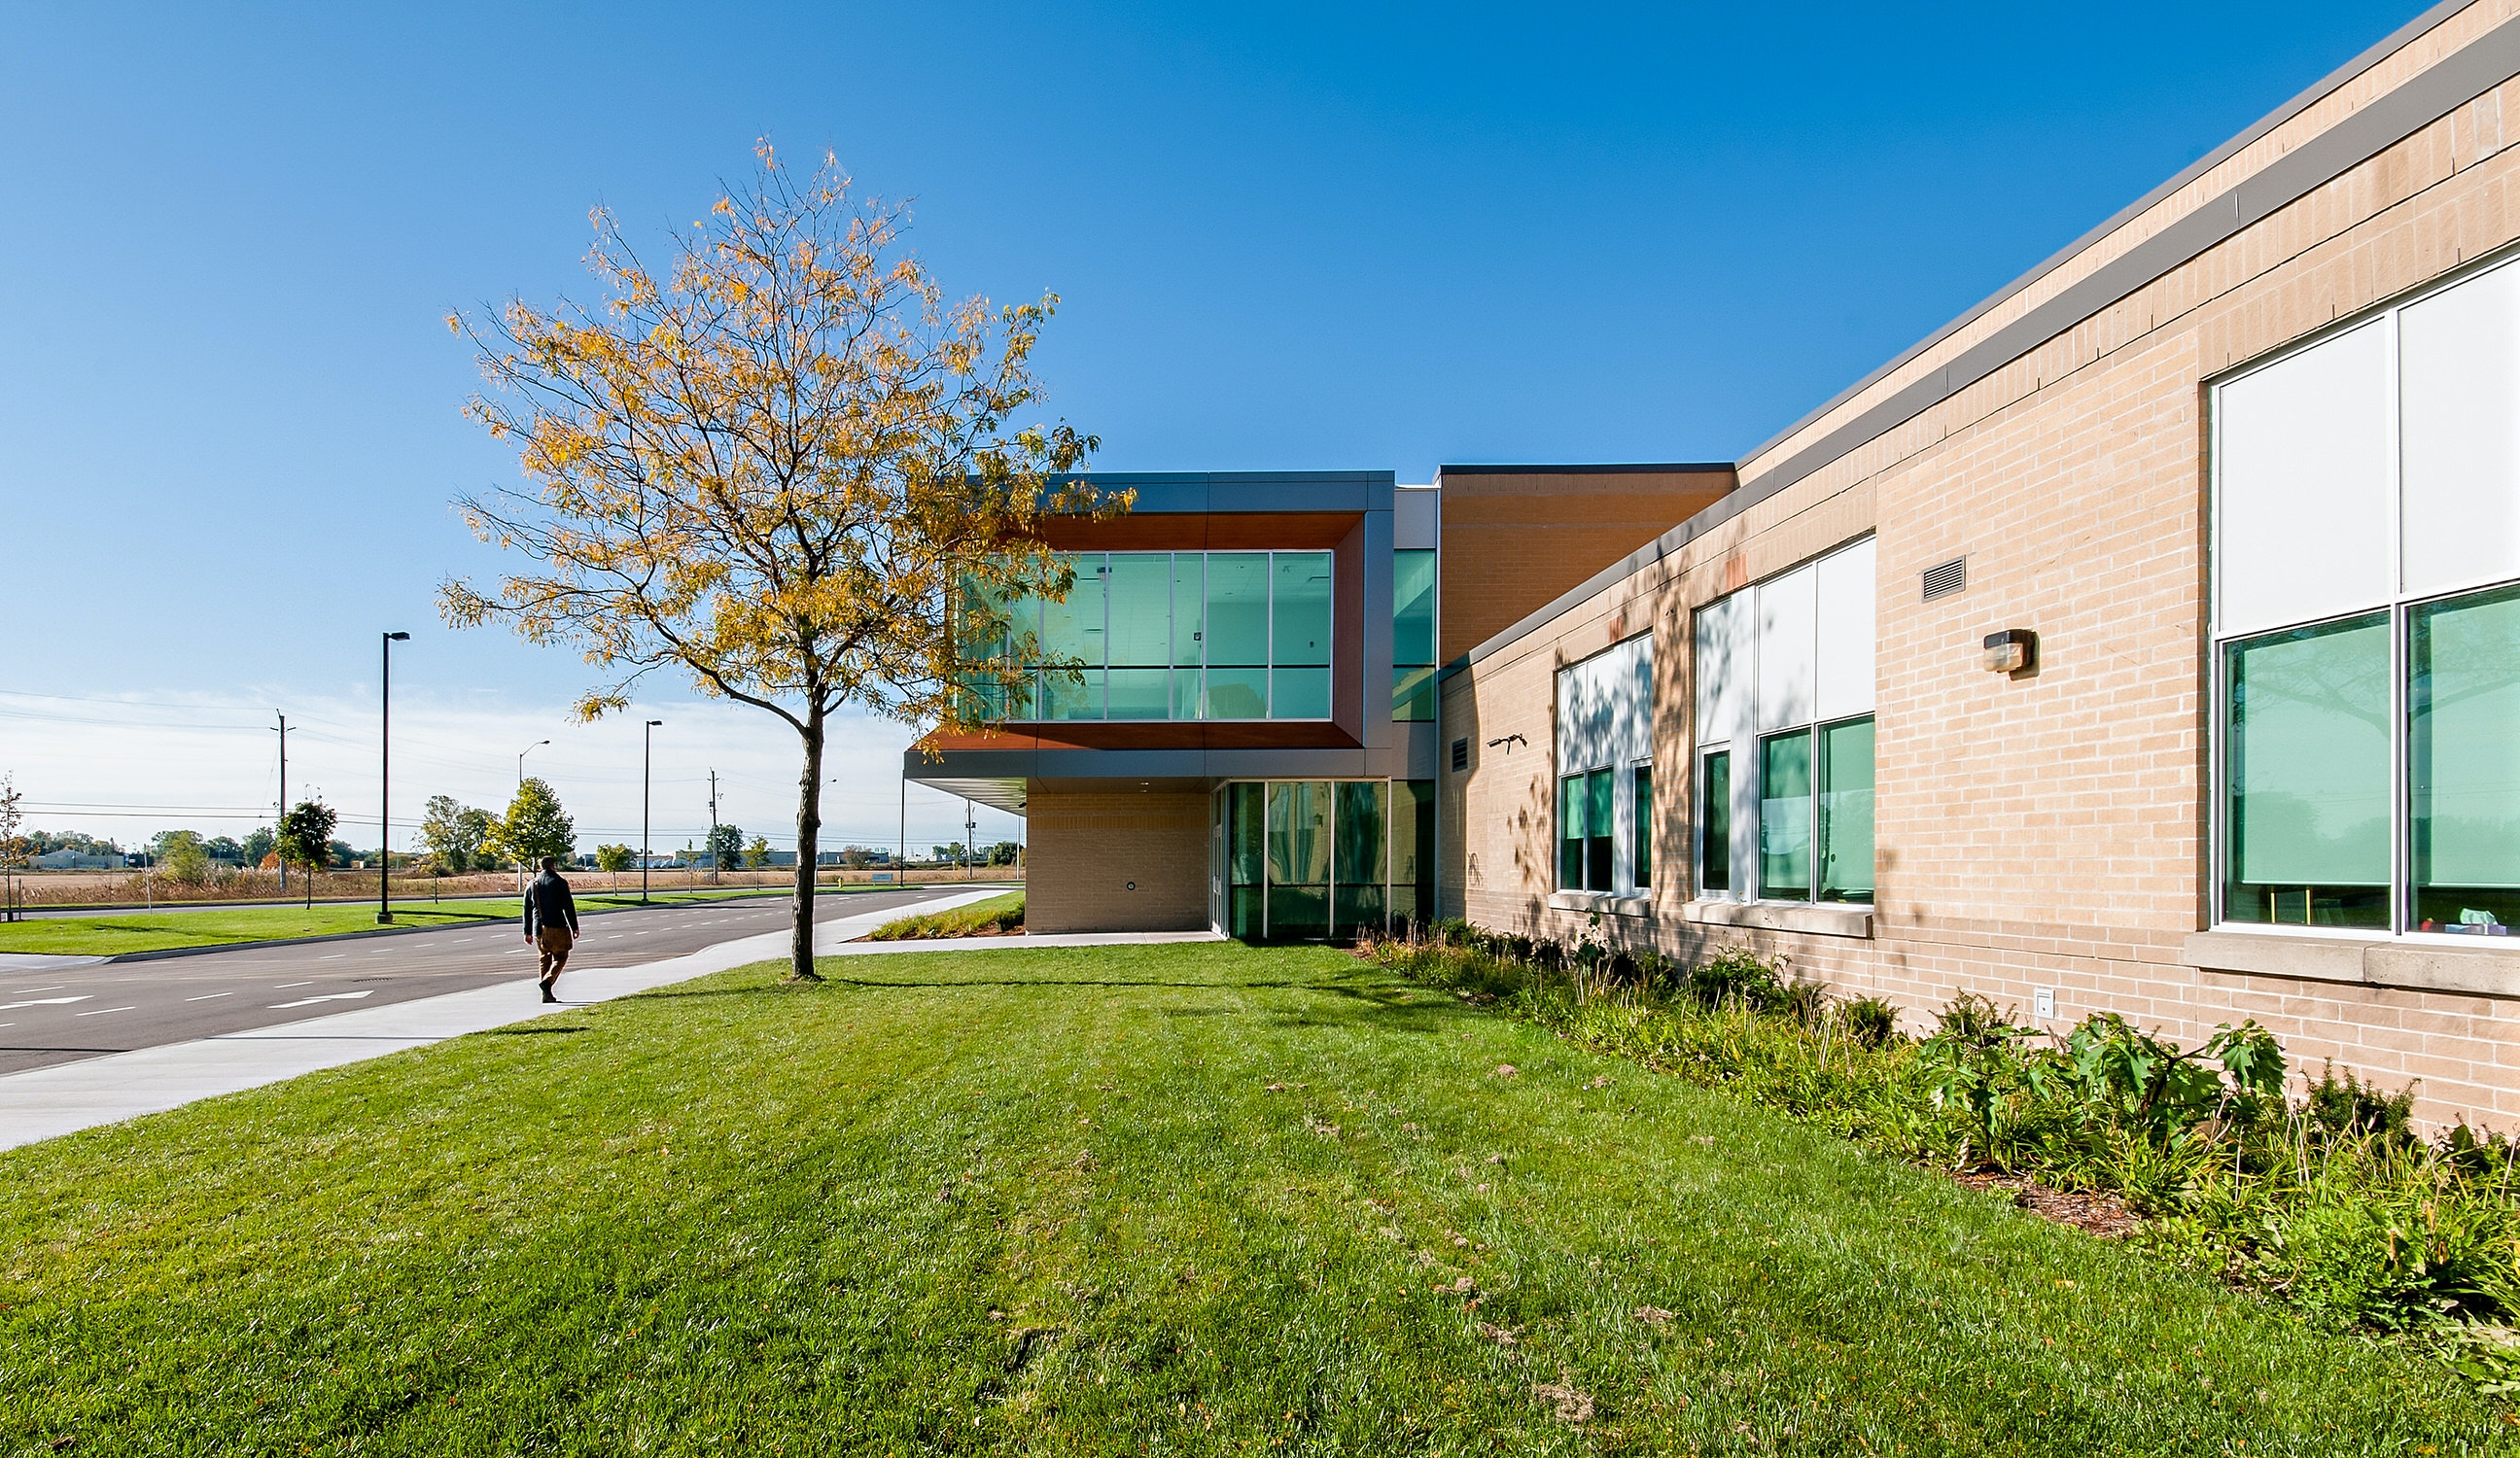 Architecture Photograph of School in Southwestern Ontario